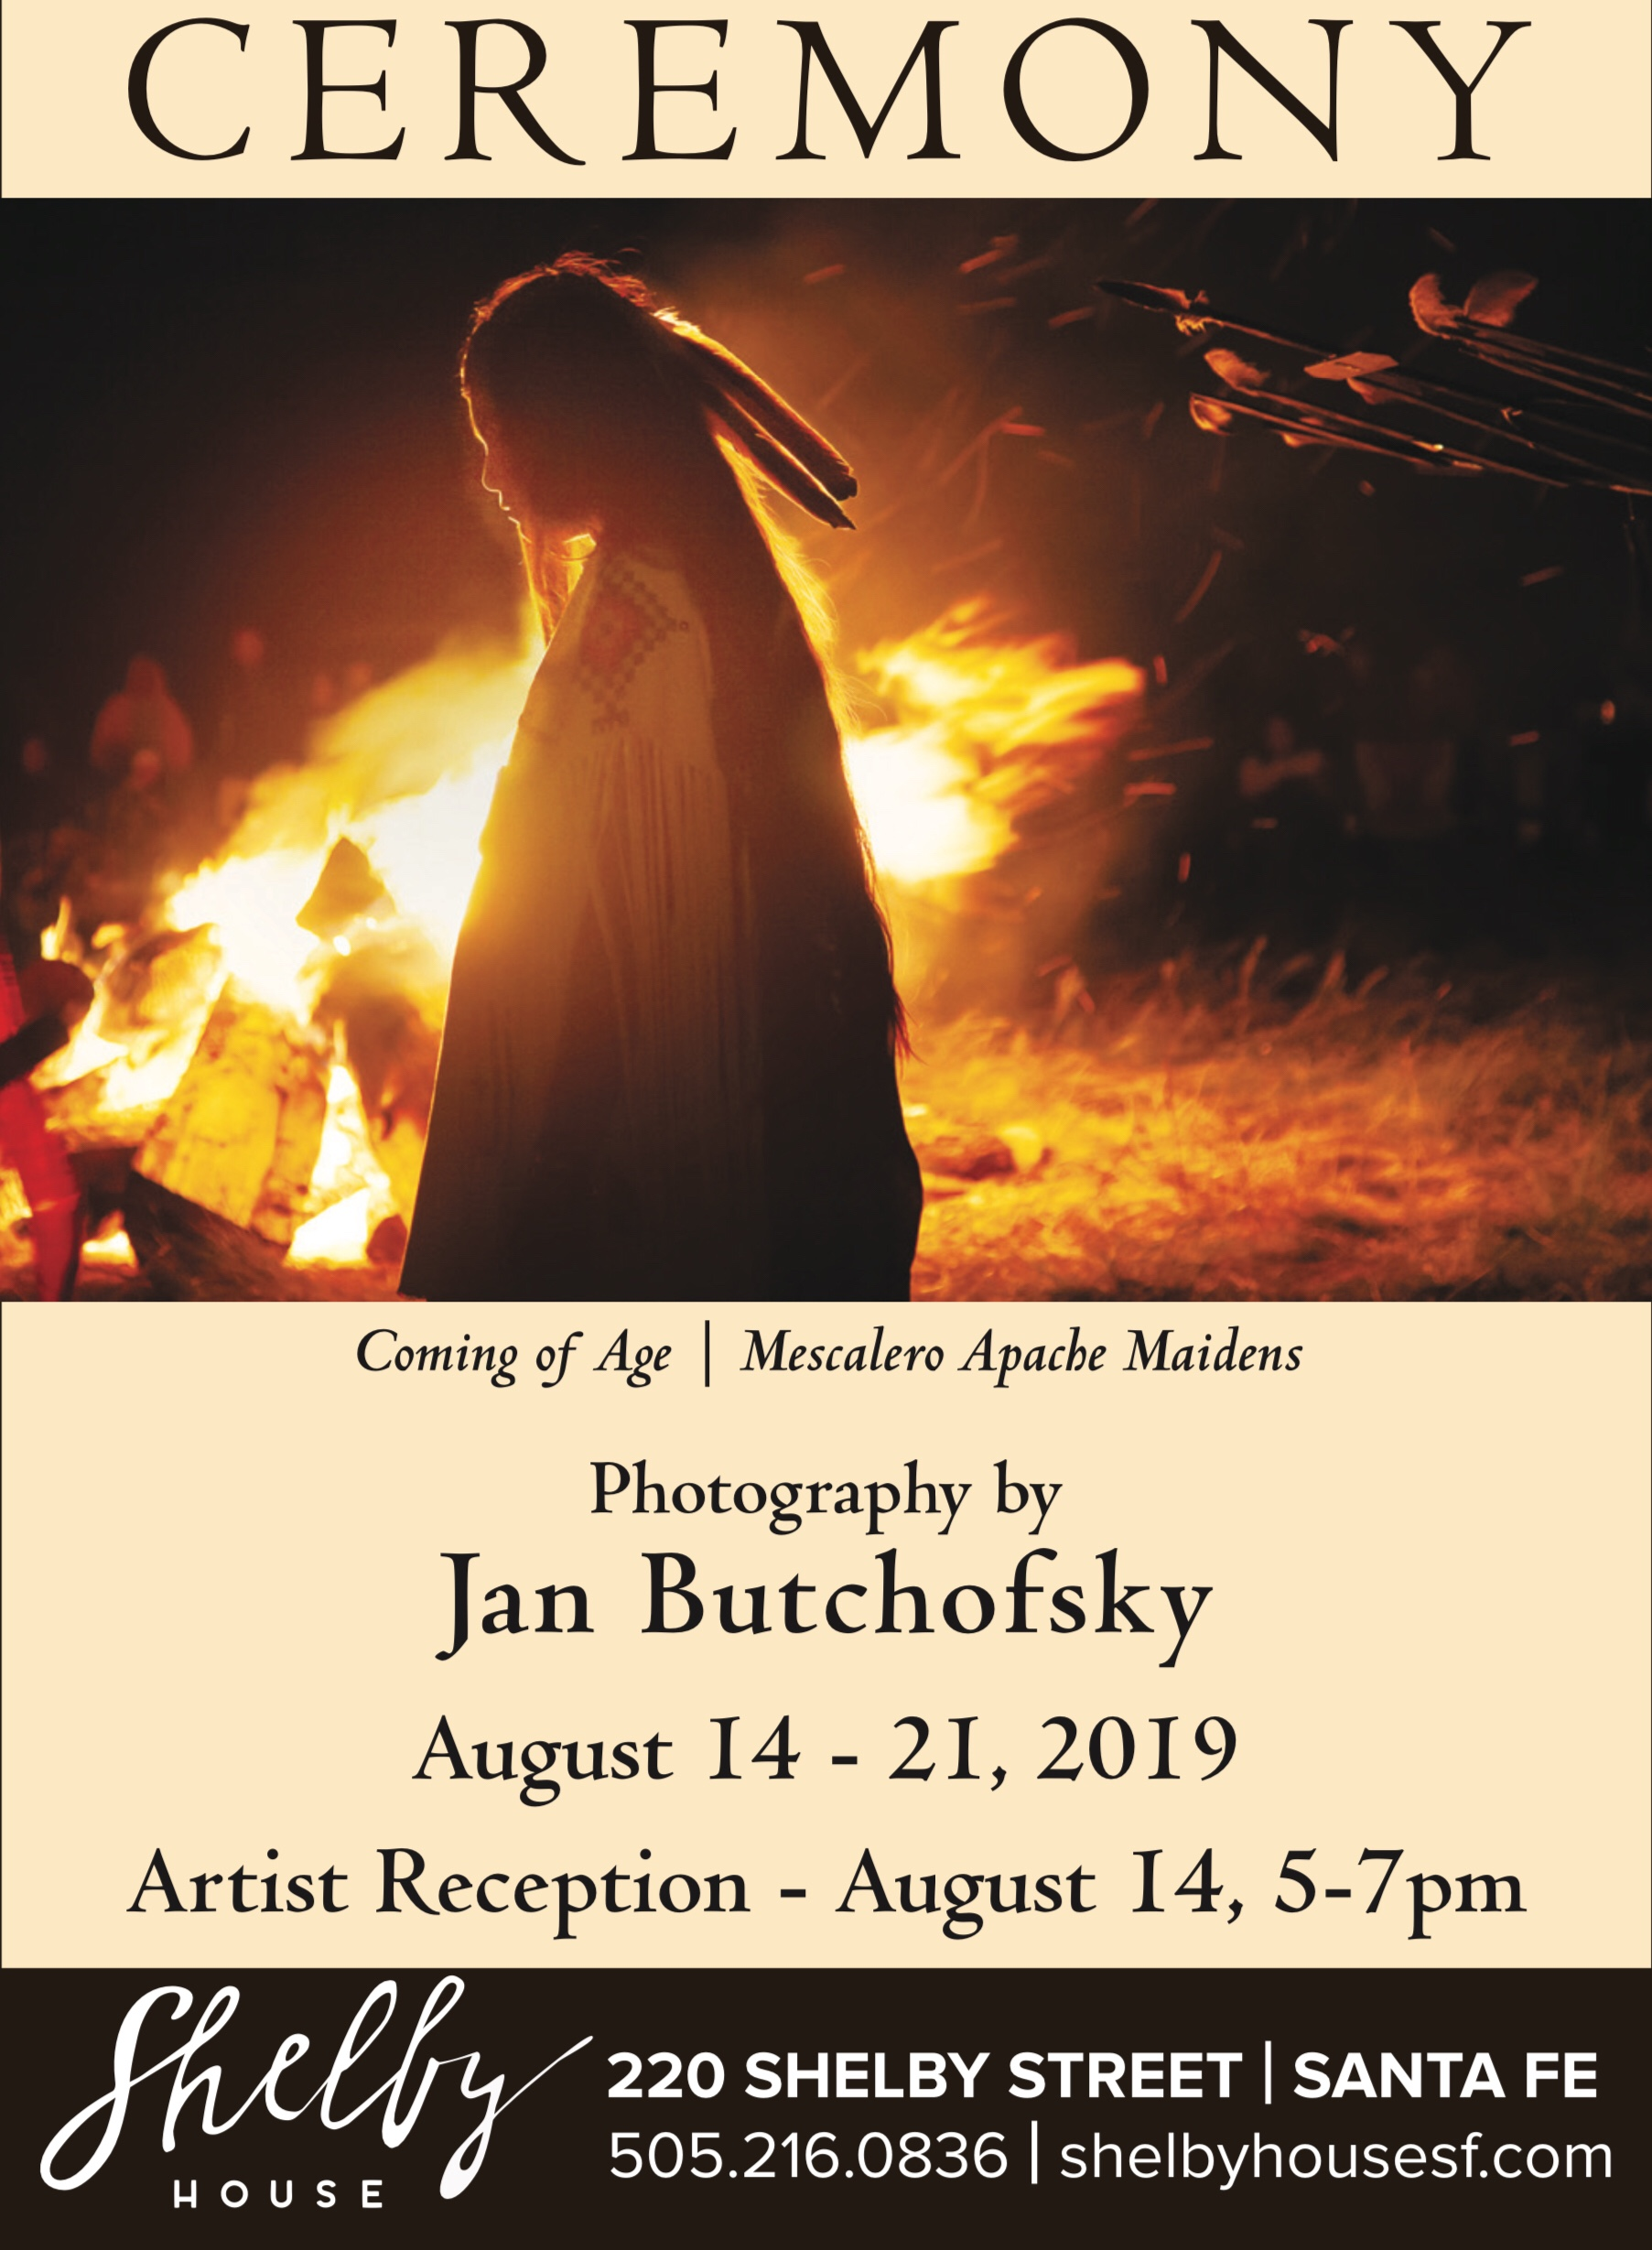 Coming of Age Ceremony: Portrait of Mescalero Apache Women by Jan Butchofsky will be on display at Shelby House in Santa Fe August 14 - 21, 2019.